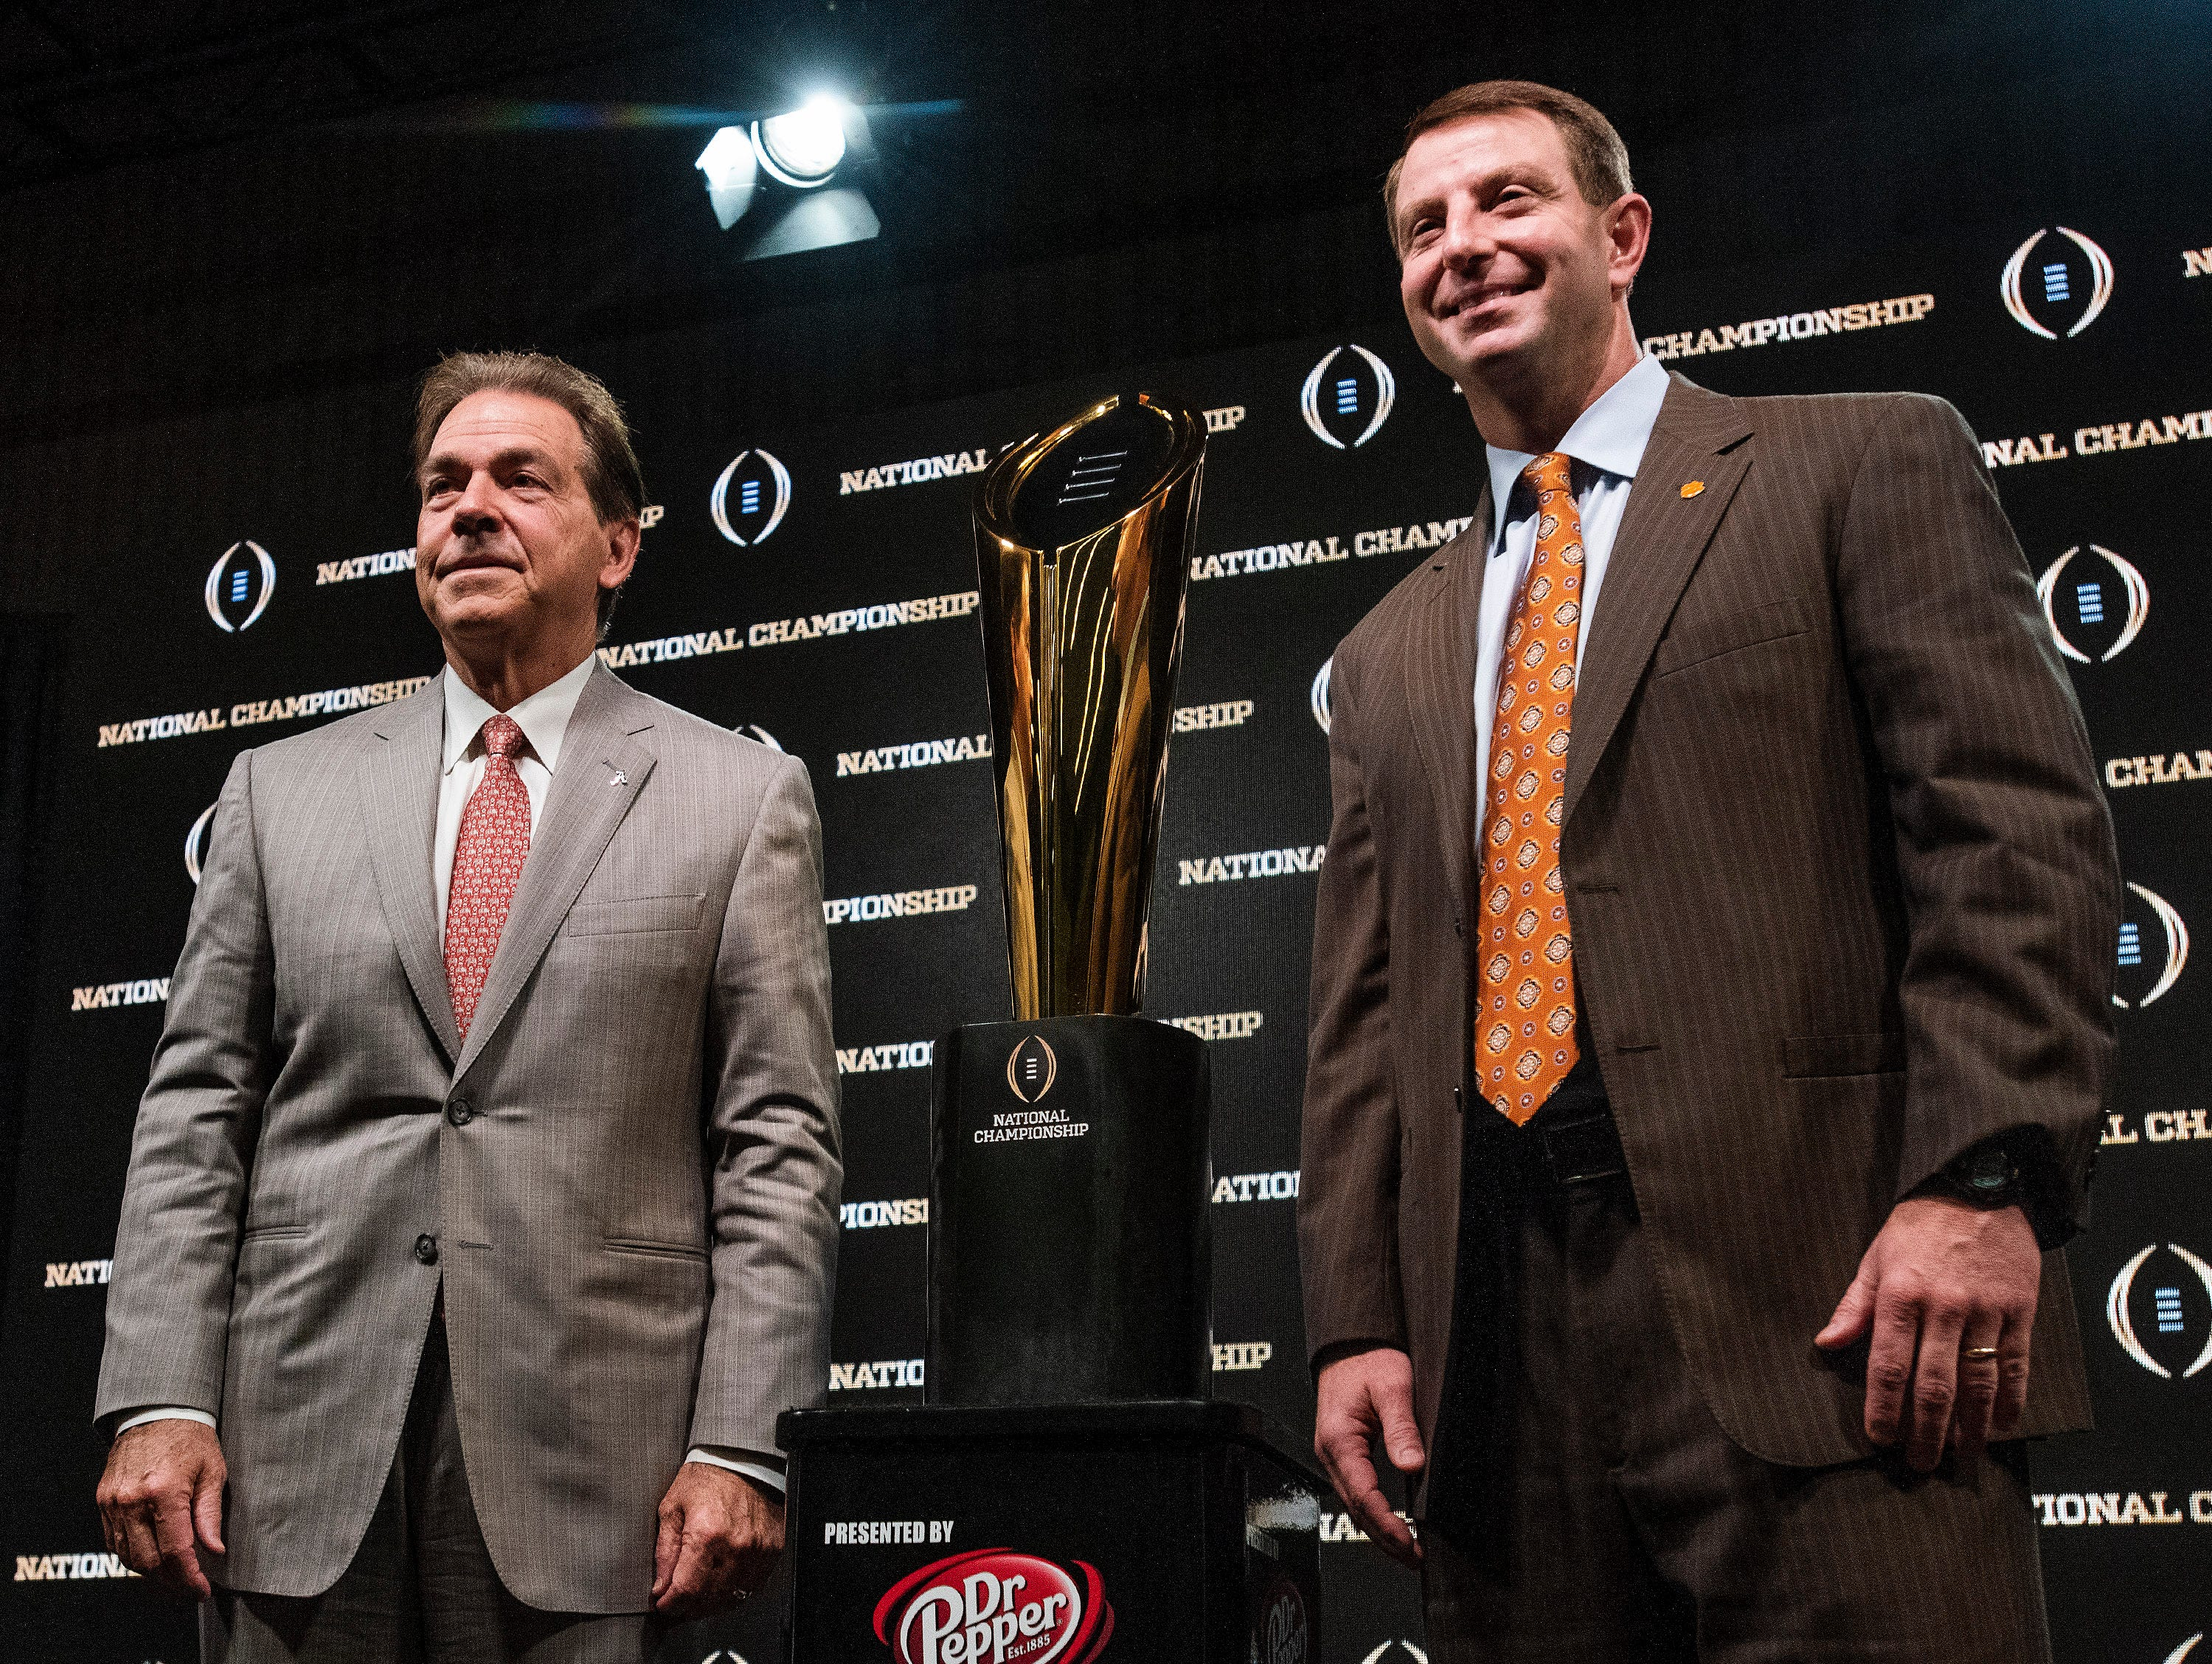 Alabama head coach Nick Sabanand Clemson head coach Dabo Swinney  pose with the trophy during the College Football National Championship coaches press conference in San Jose, Ca., on Sunday January 6, 2019.